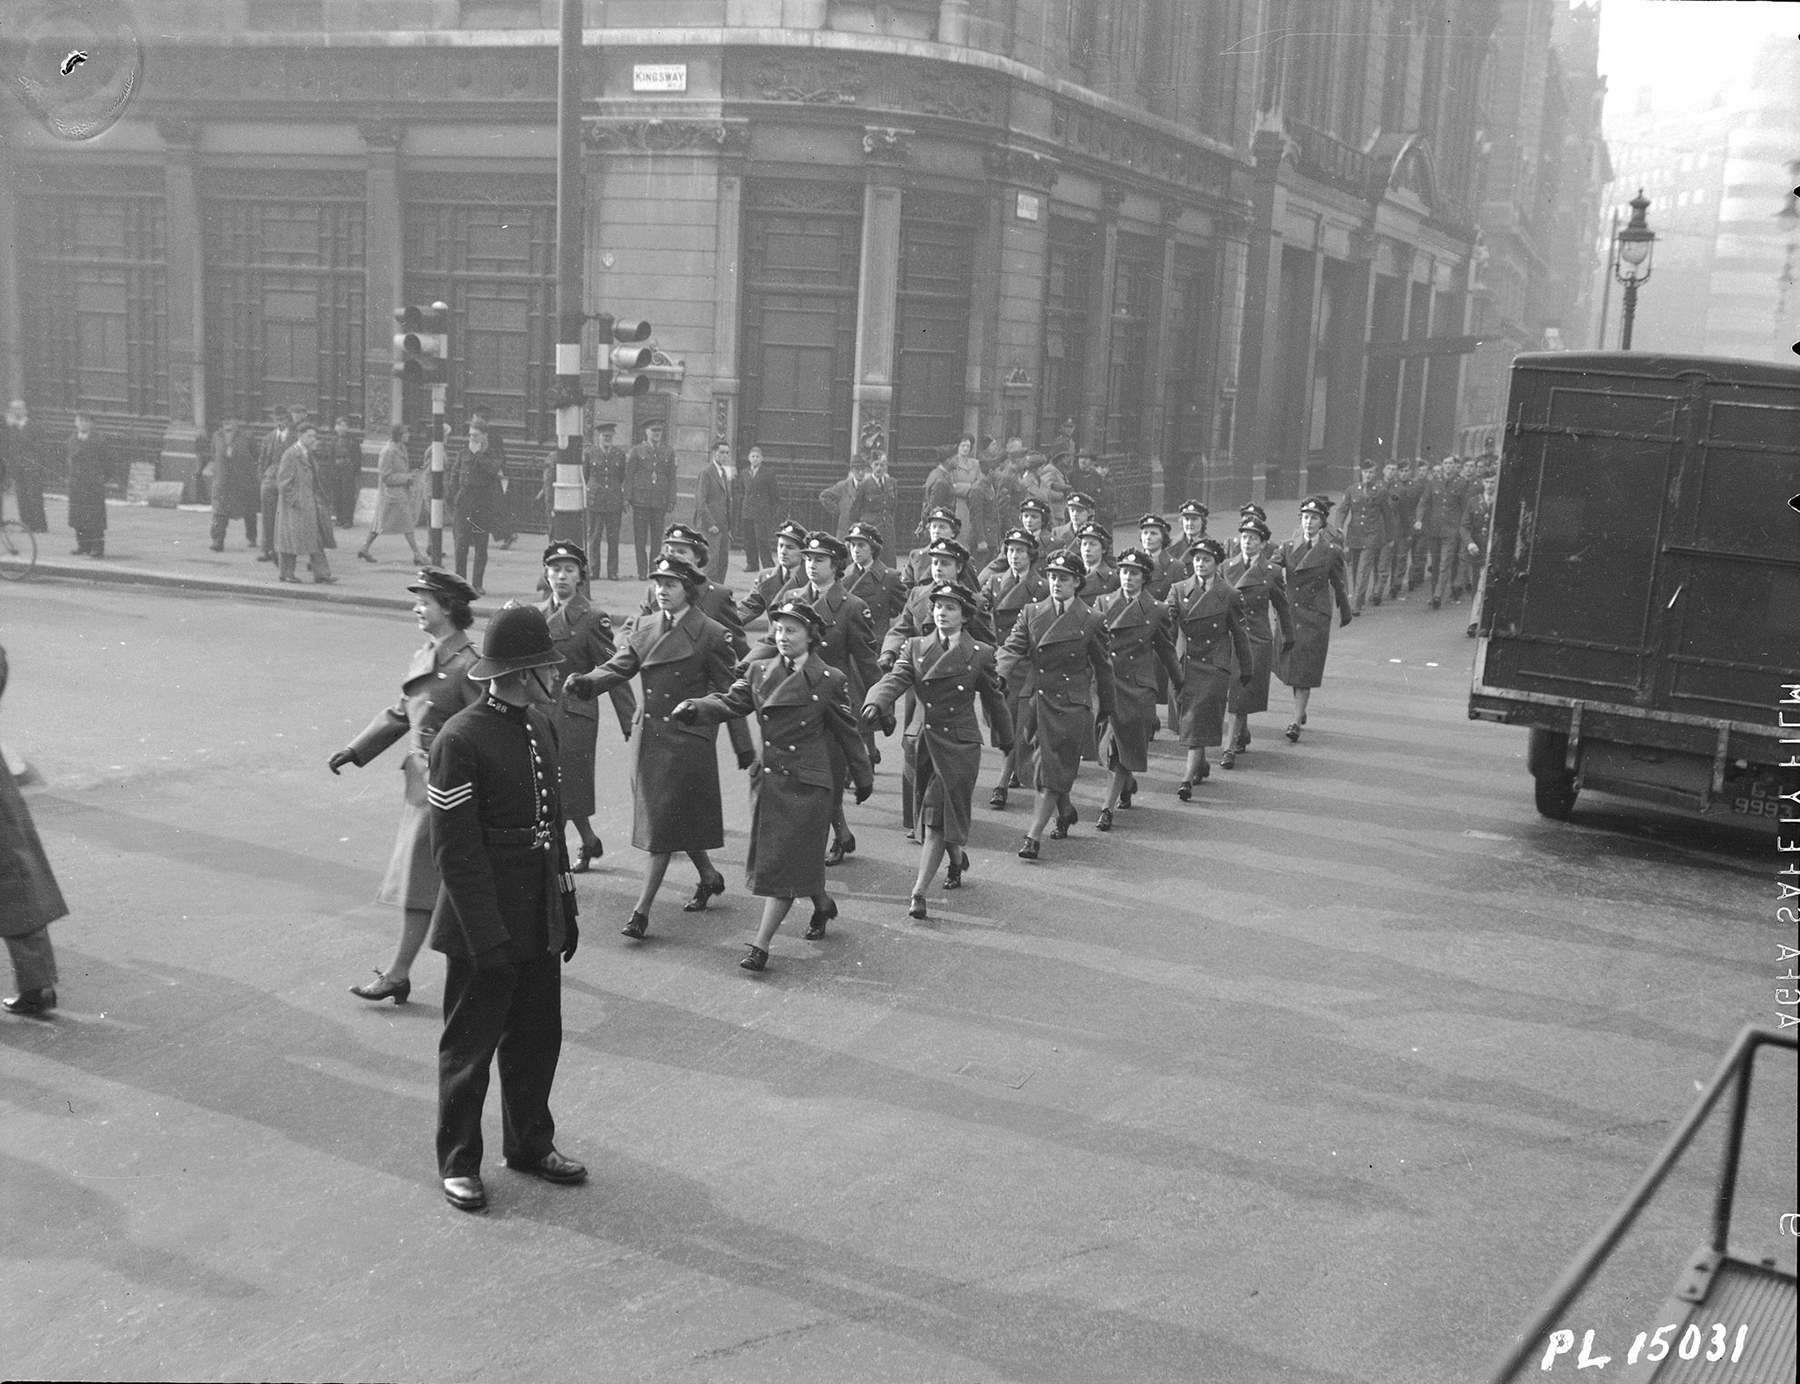 Members of the Royal Canadian Air Force Overseas Women's Division march through the streets of London, England, in the Remembrance Day Church Parade held November 12, 1942. PHOTO: DND Archives, PL-15031